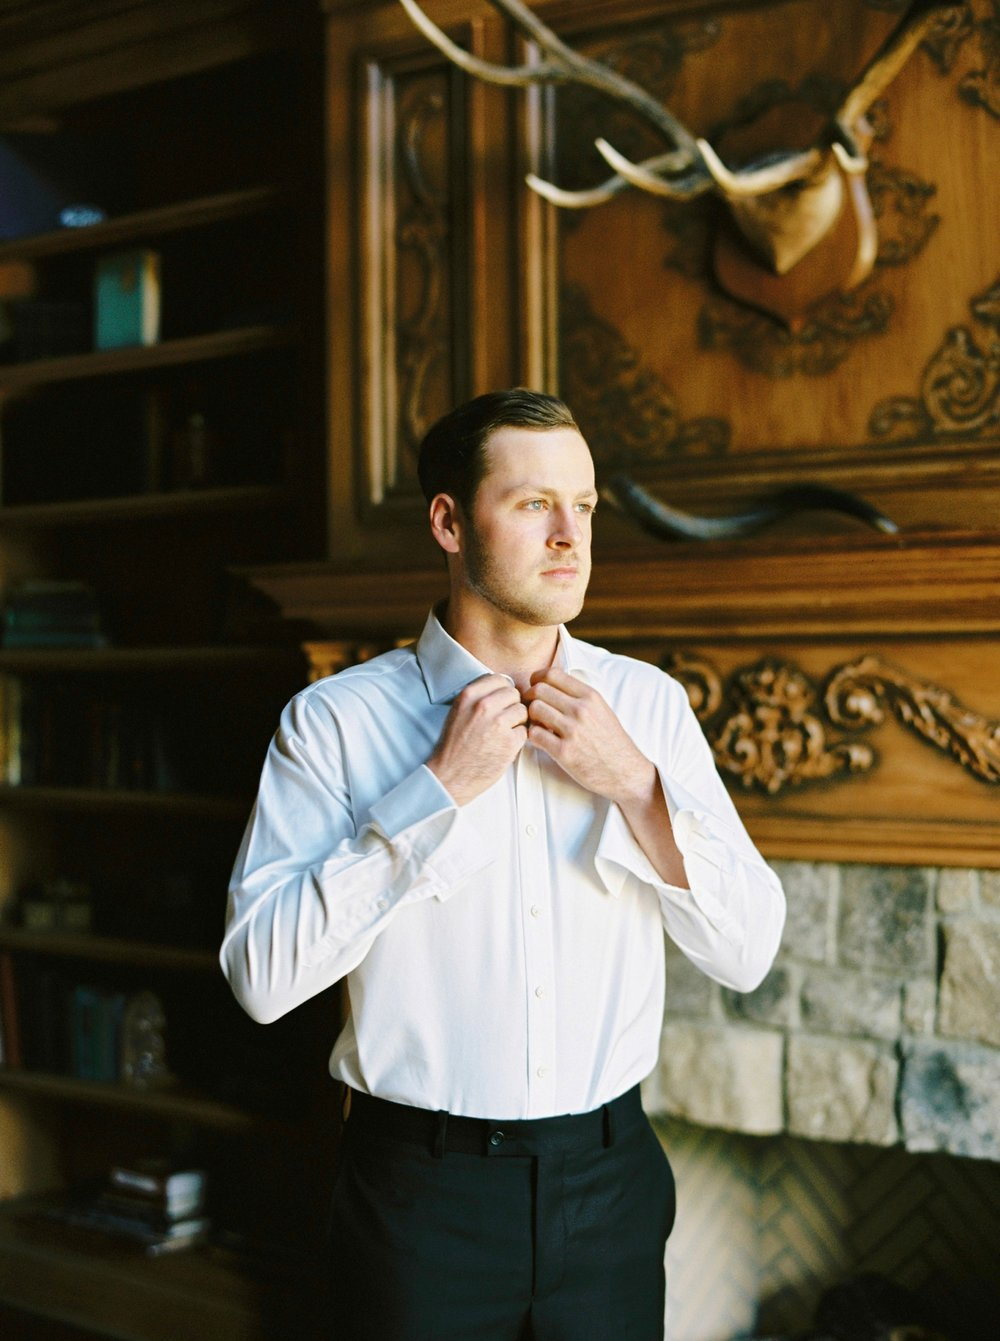 Calgary wedding photographers | georgia wedding photographers | fine art film | Justine Milton Photography | wedding details | georgia wedding | groom getting ready